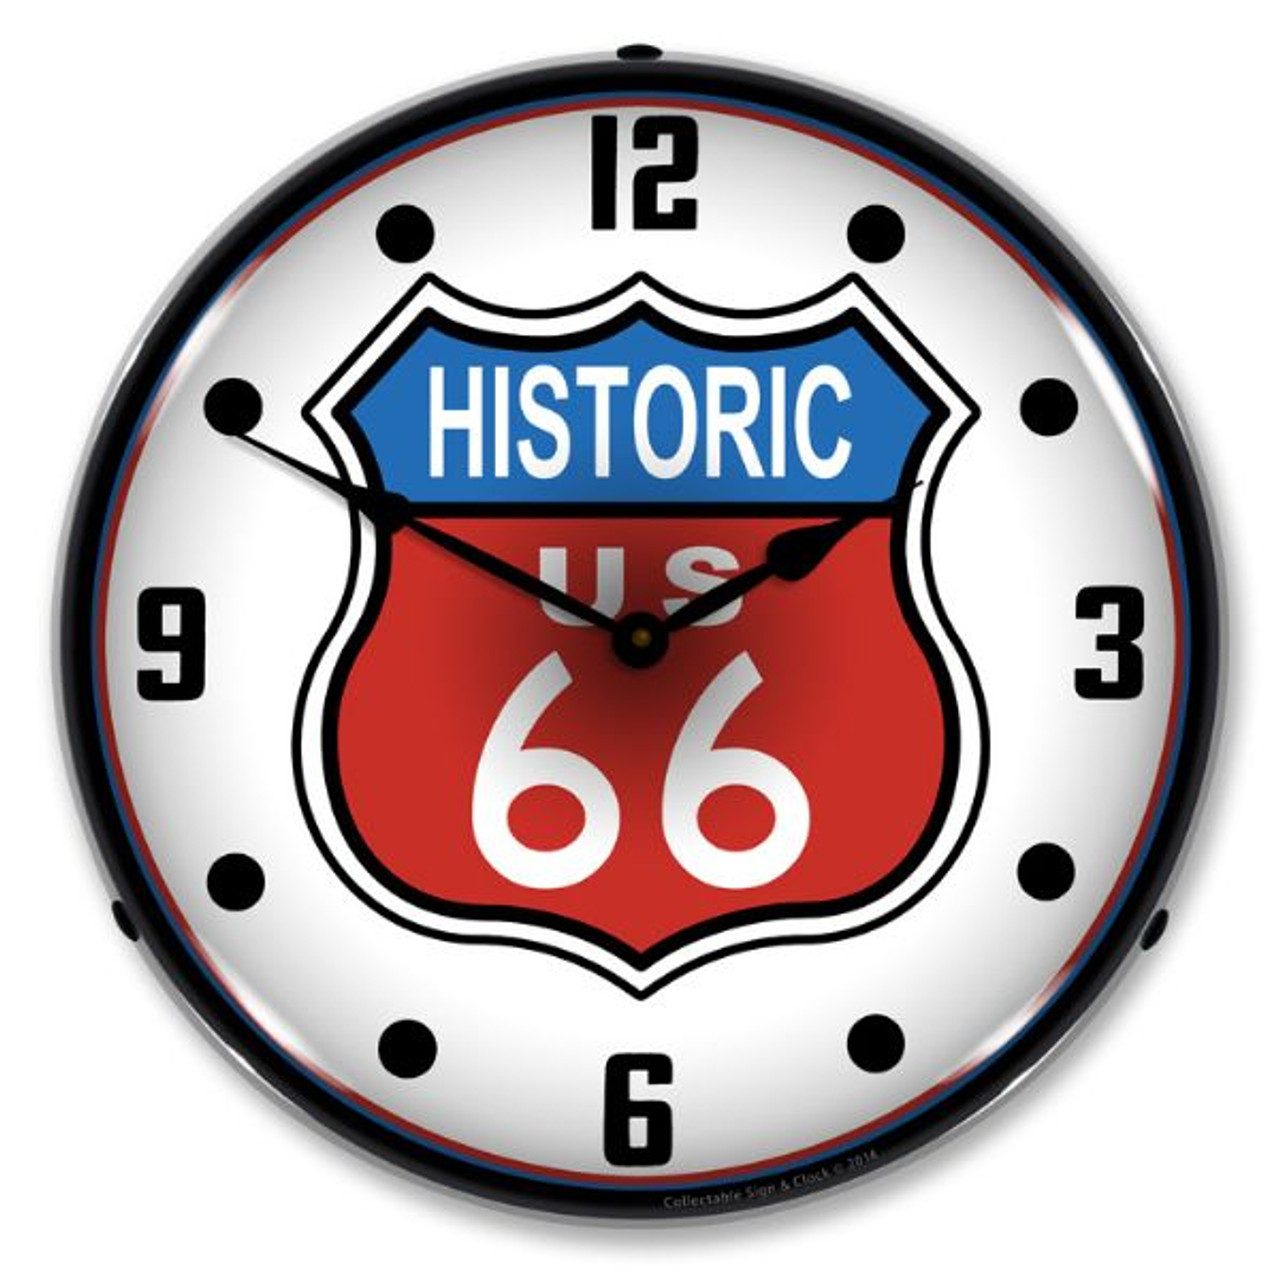 Historic Route 66 Lighted Wall Clock 14 x 14 Inches